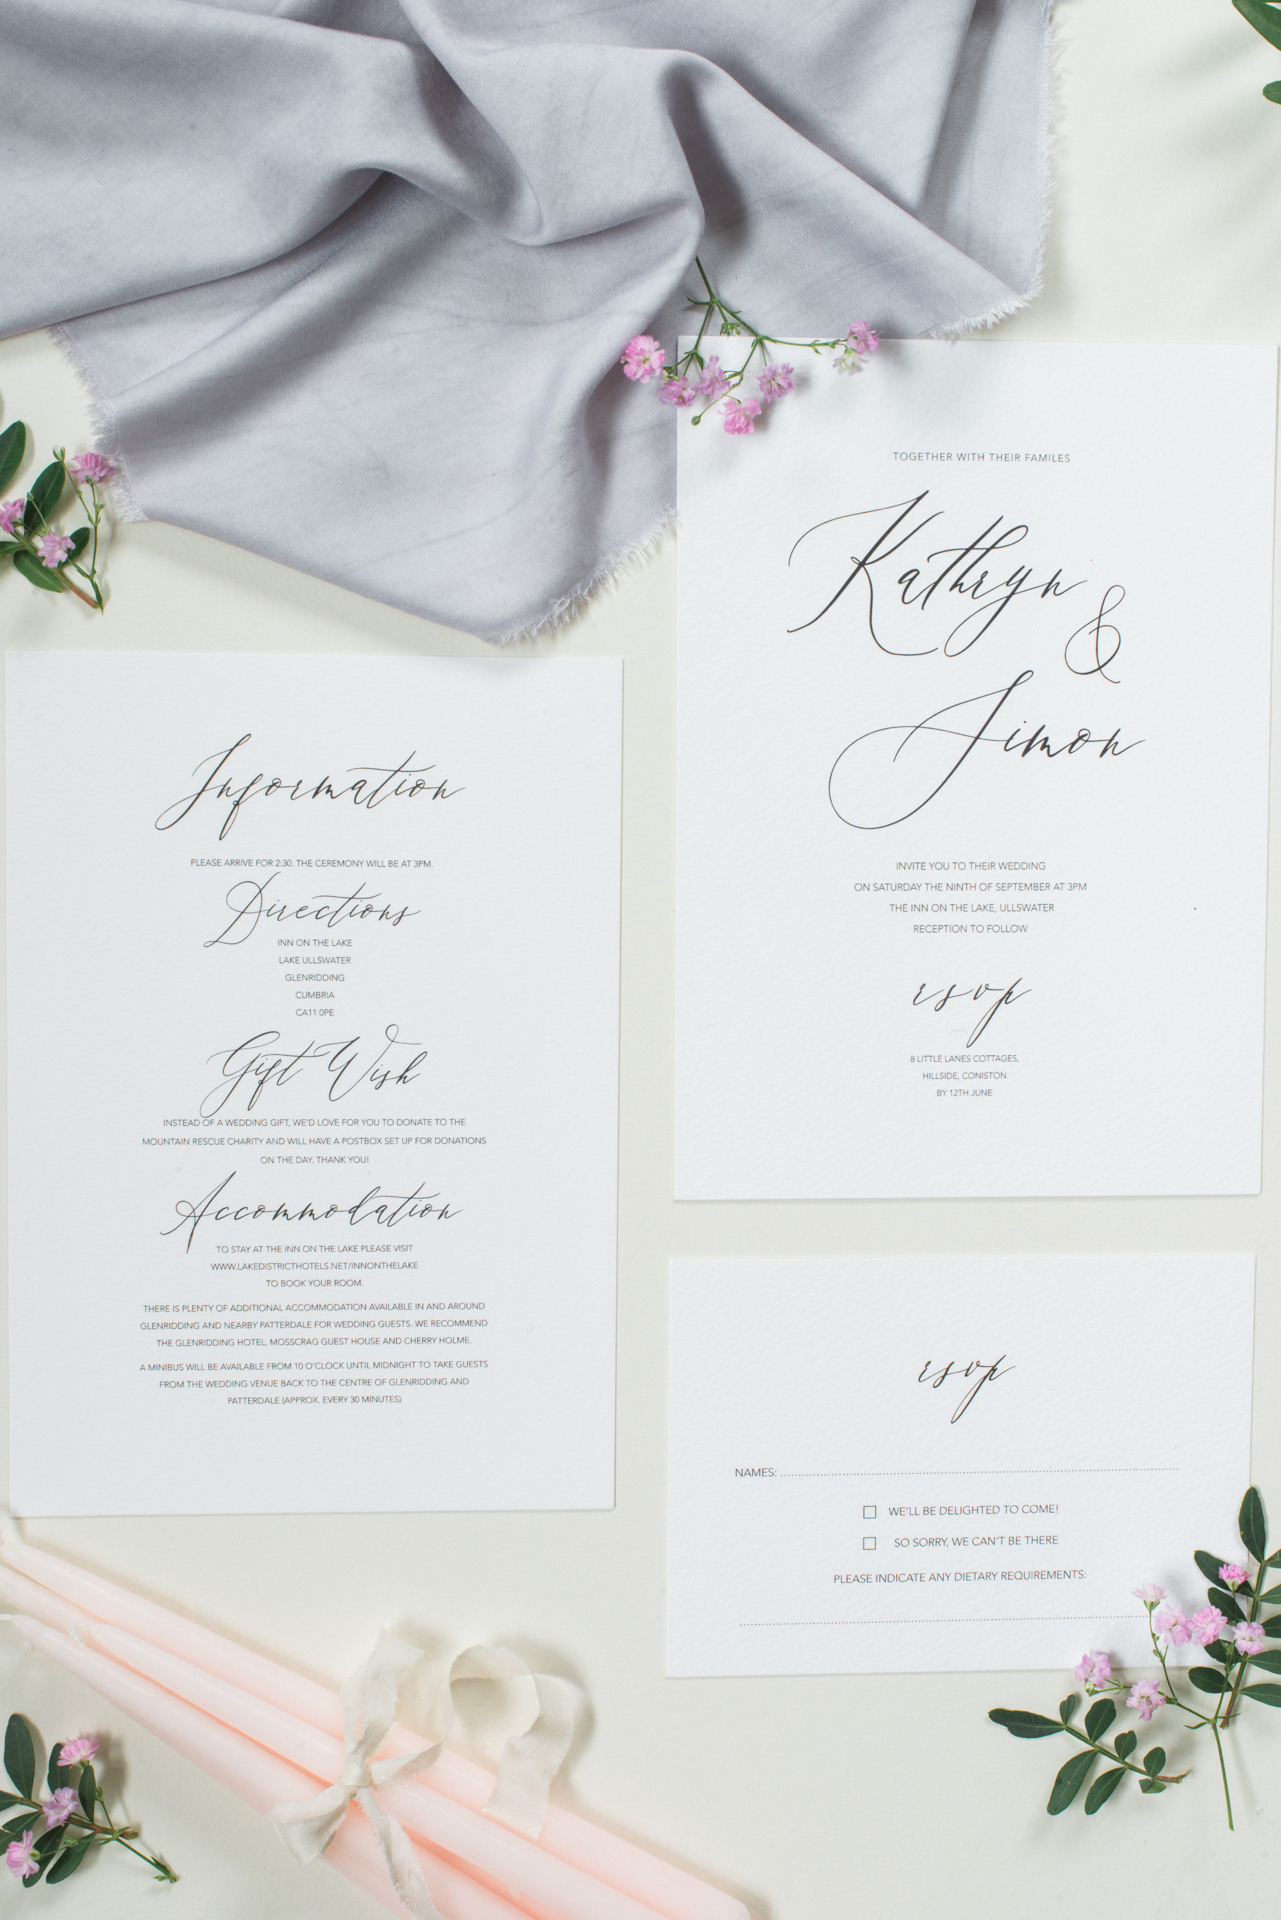 wedding invitations – By Moon & Tide